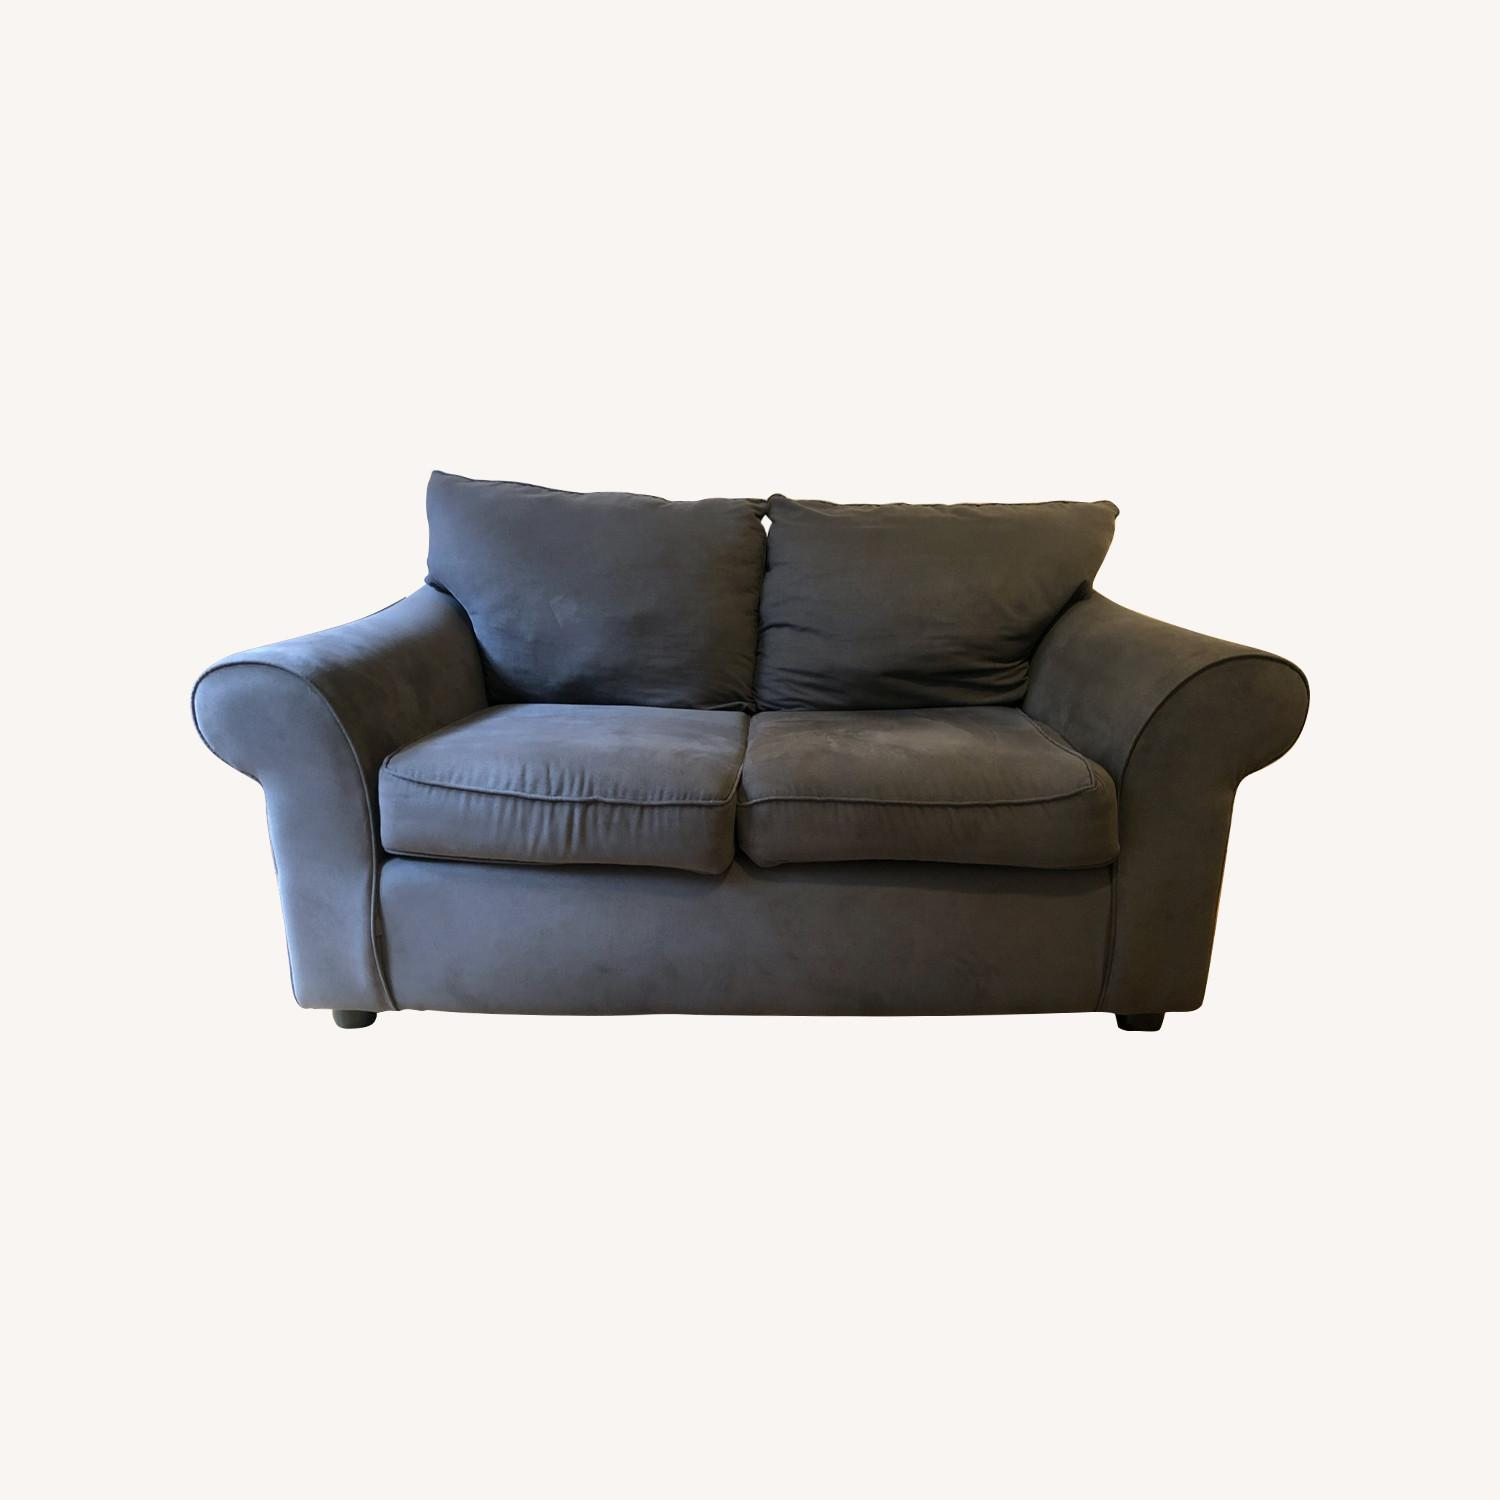 American Made 2-Seat Couch - image-0